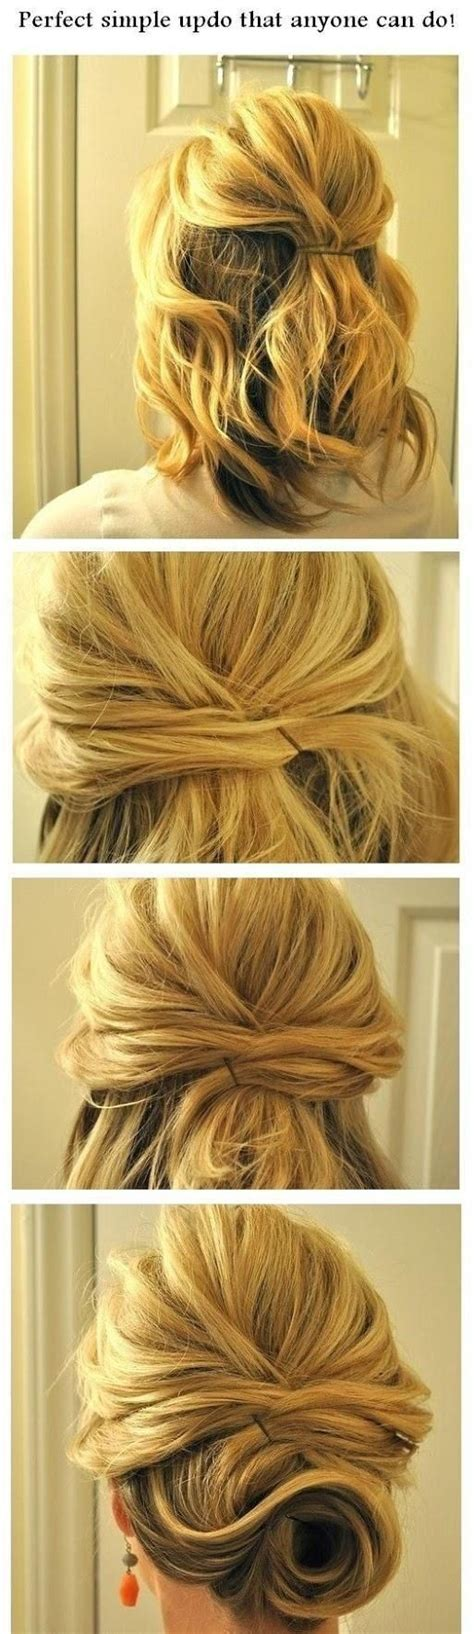 easy updo hairstyle tutorial for 14 easy step by step updo hairstyles tutorials pretty